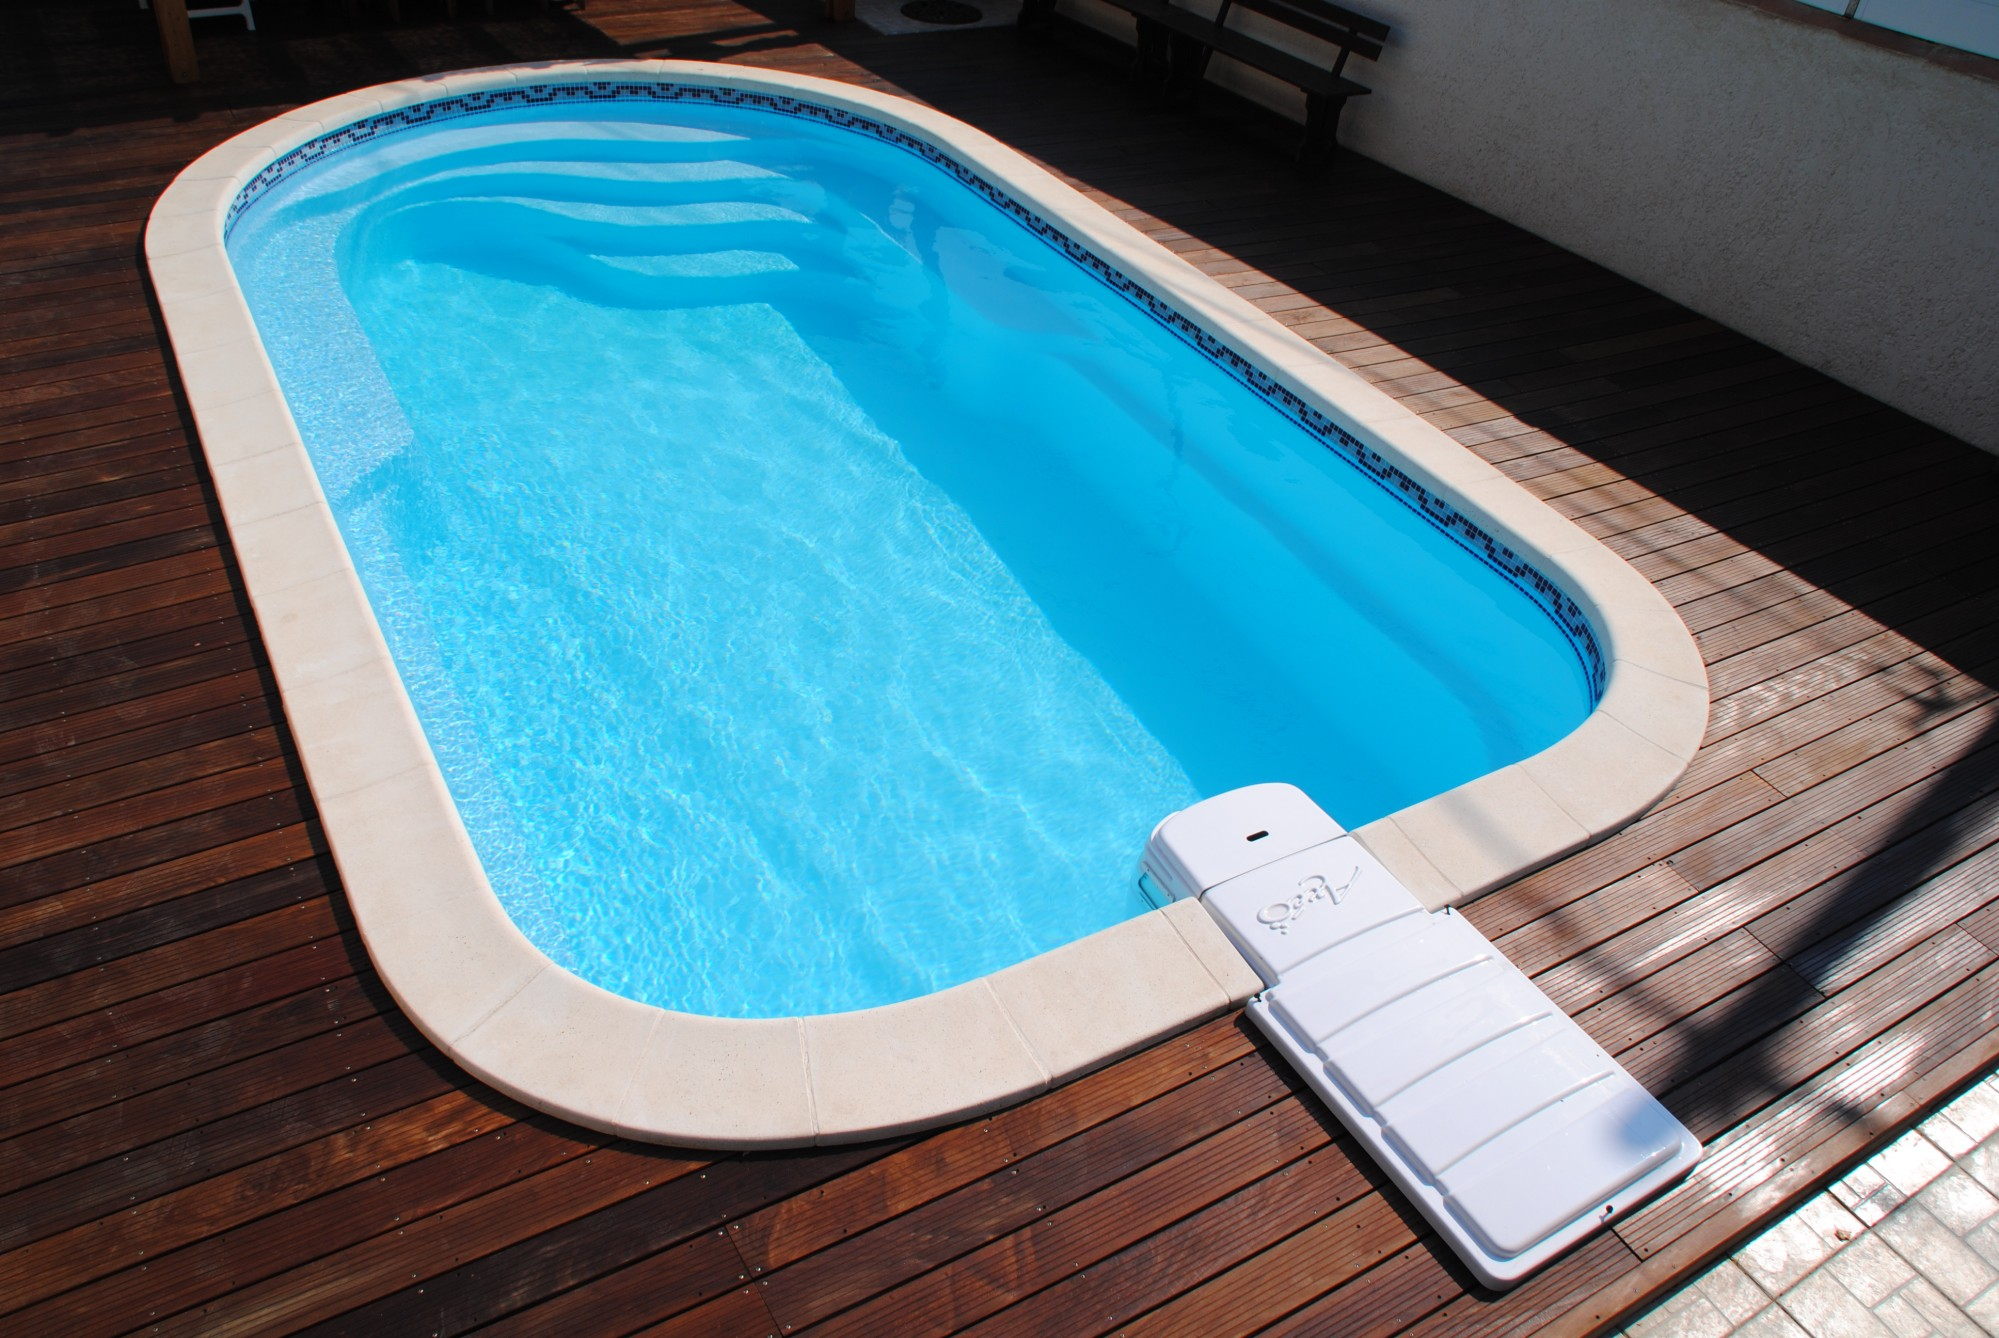 piscine coque polyester avec banquette modele axeo 700 bf istres ax o piscines. Black Bedroom Furniture Sets. Home Design Ideas